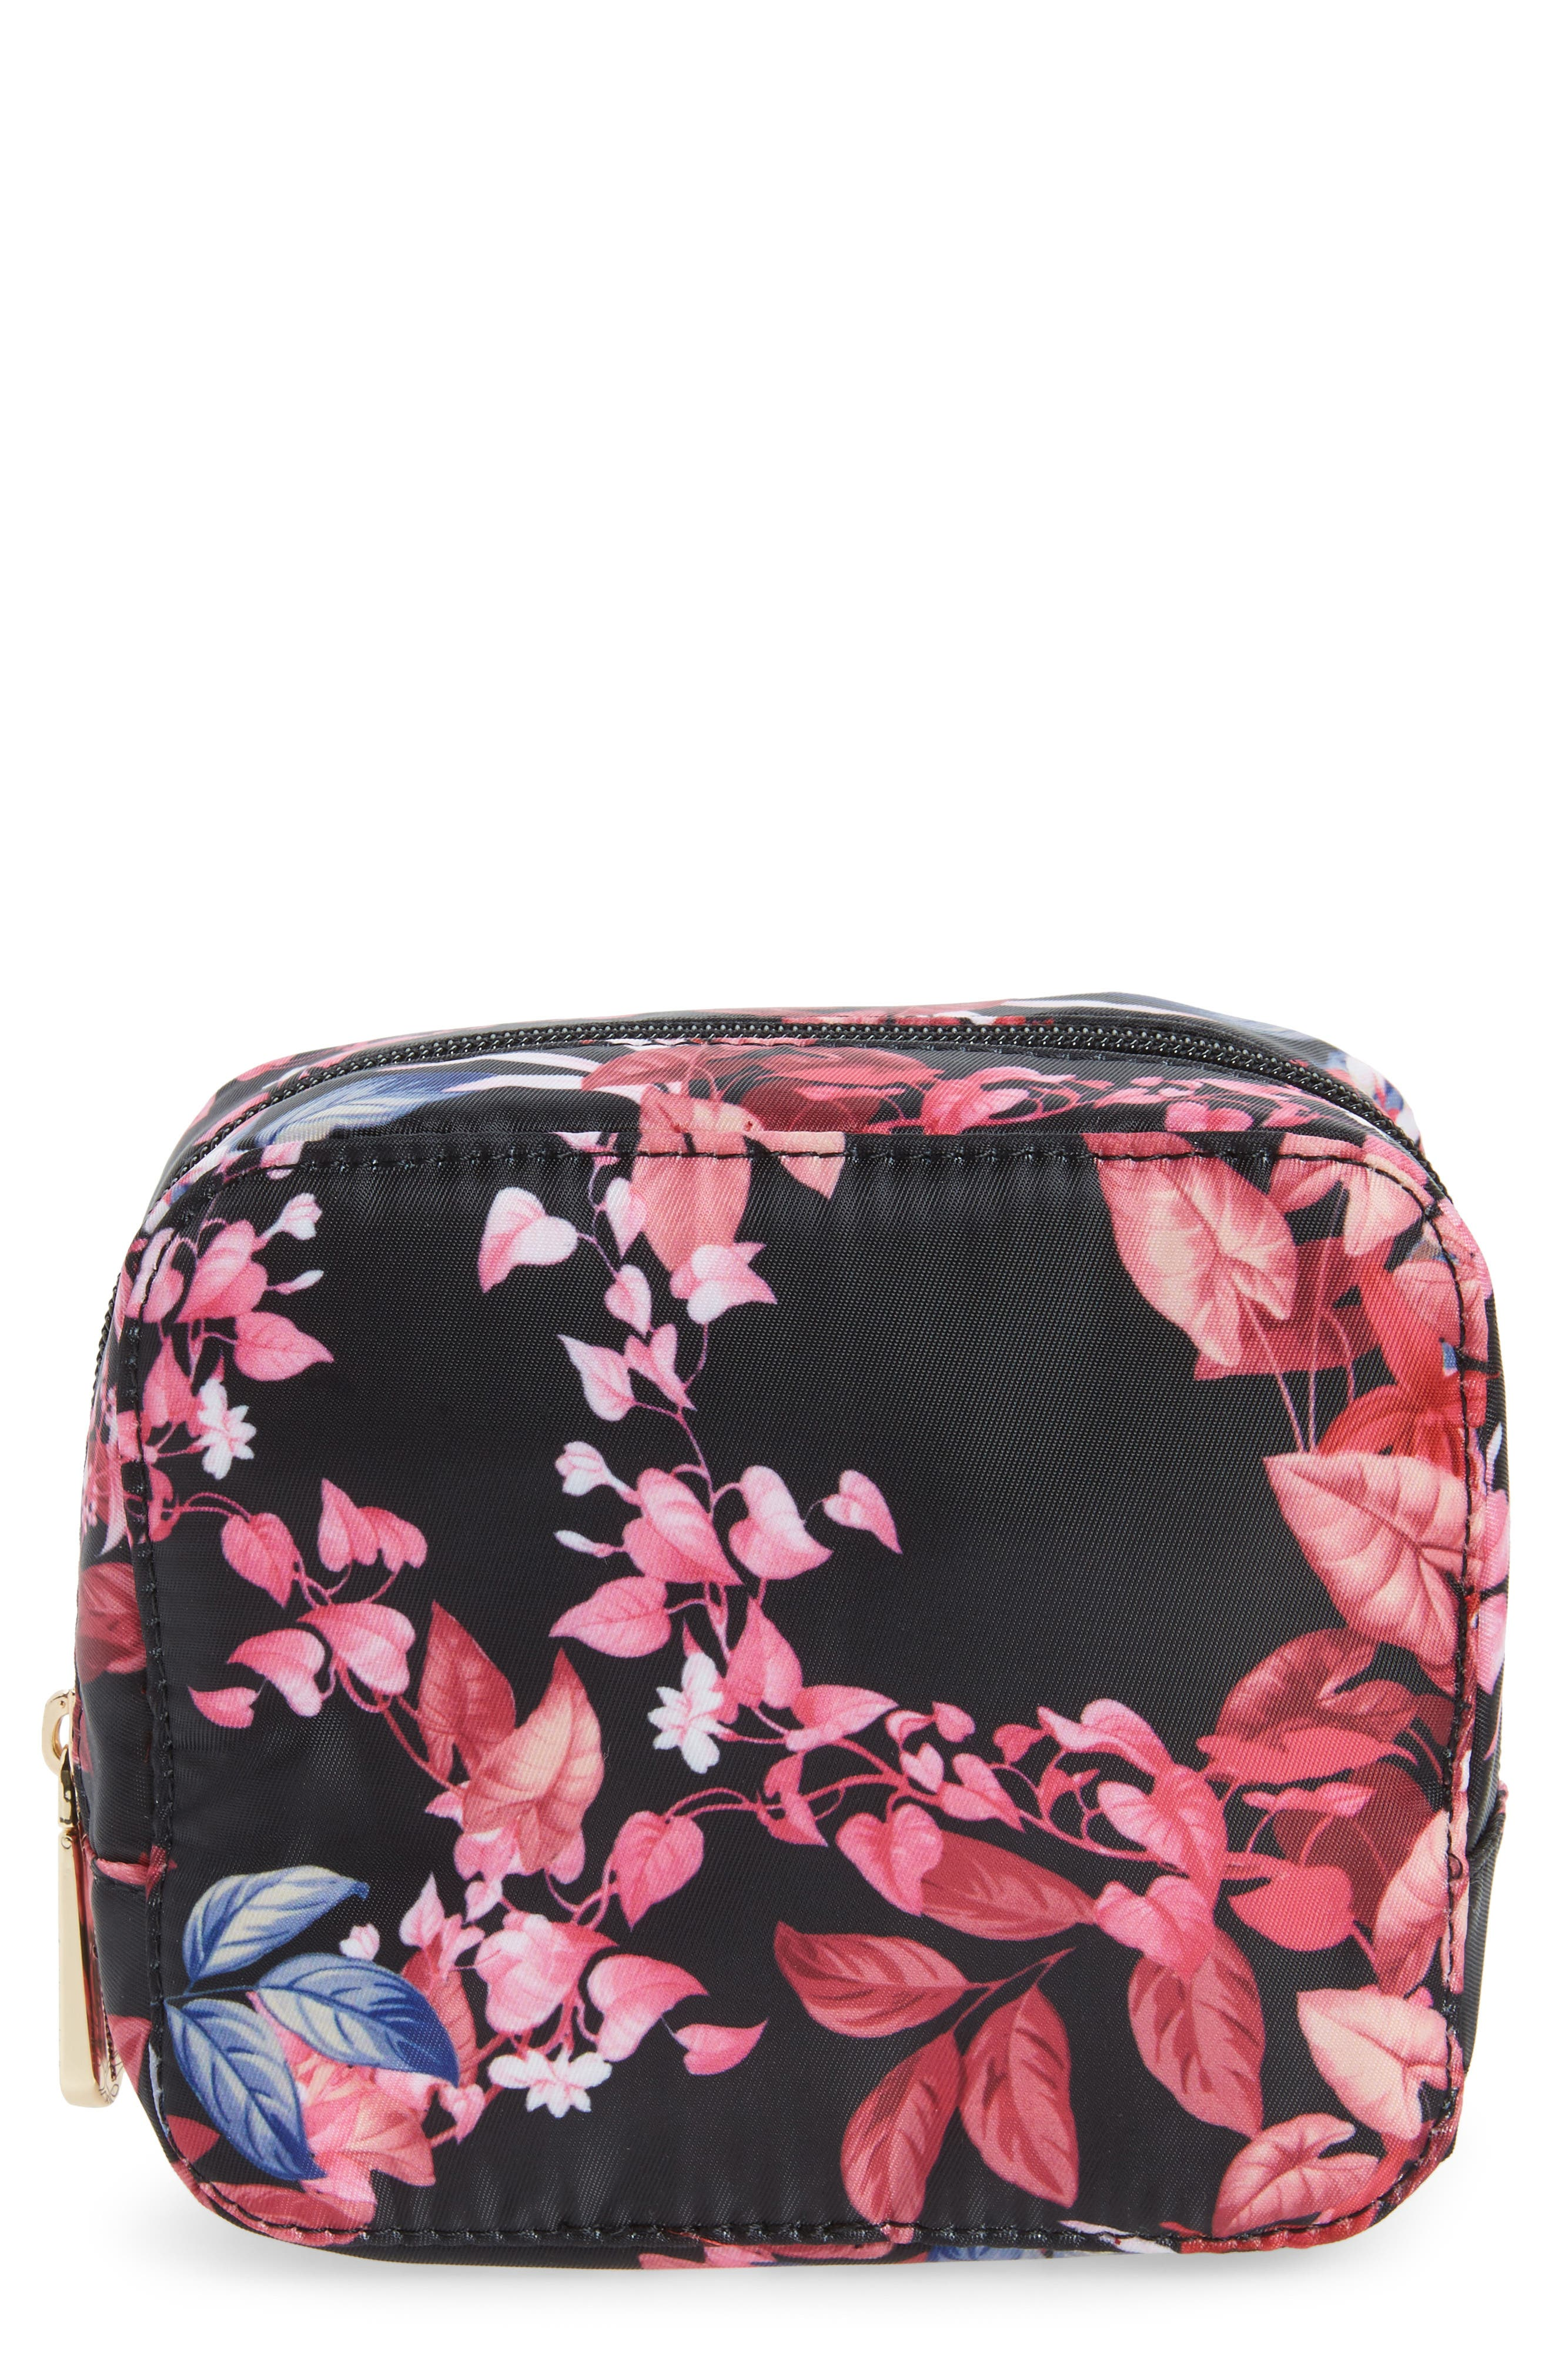 Up in the Air Cosmetics Case & Eye Mask,                         Main,                         color, 250